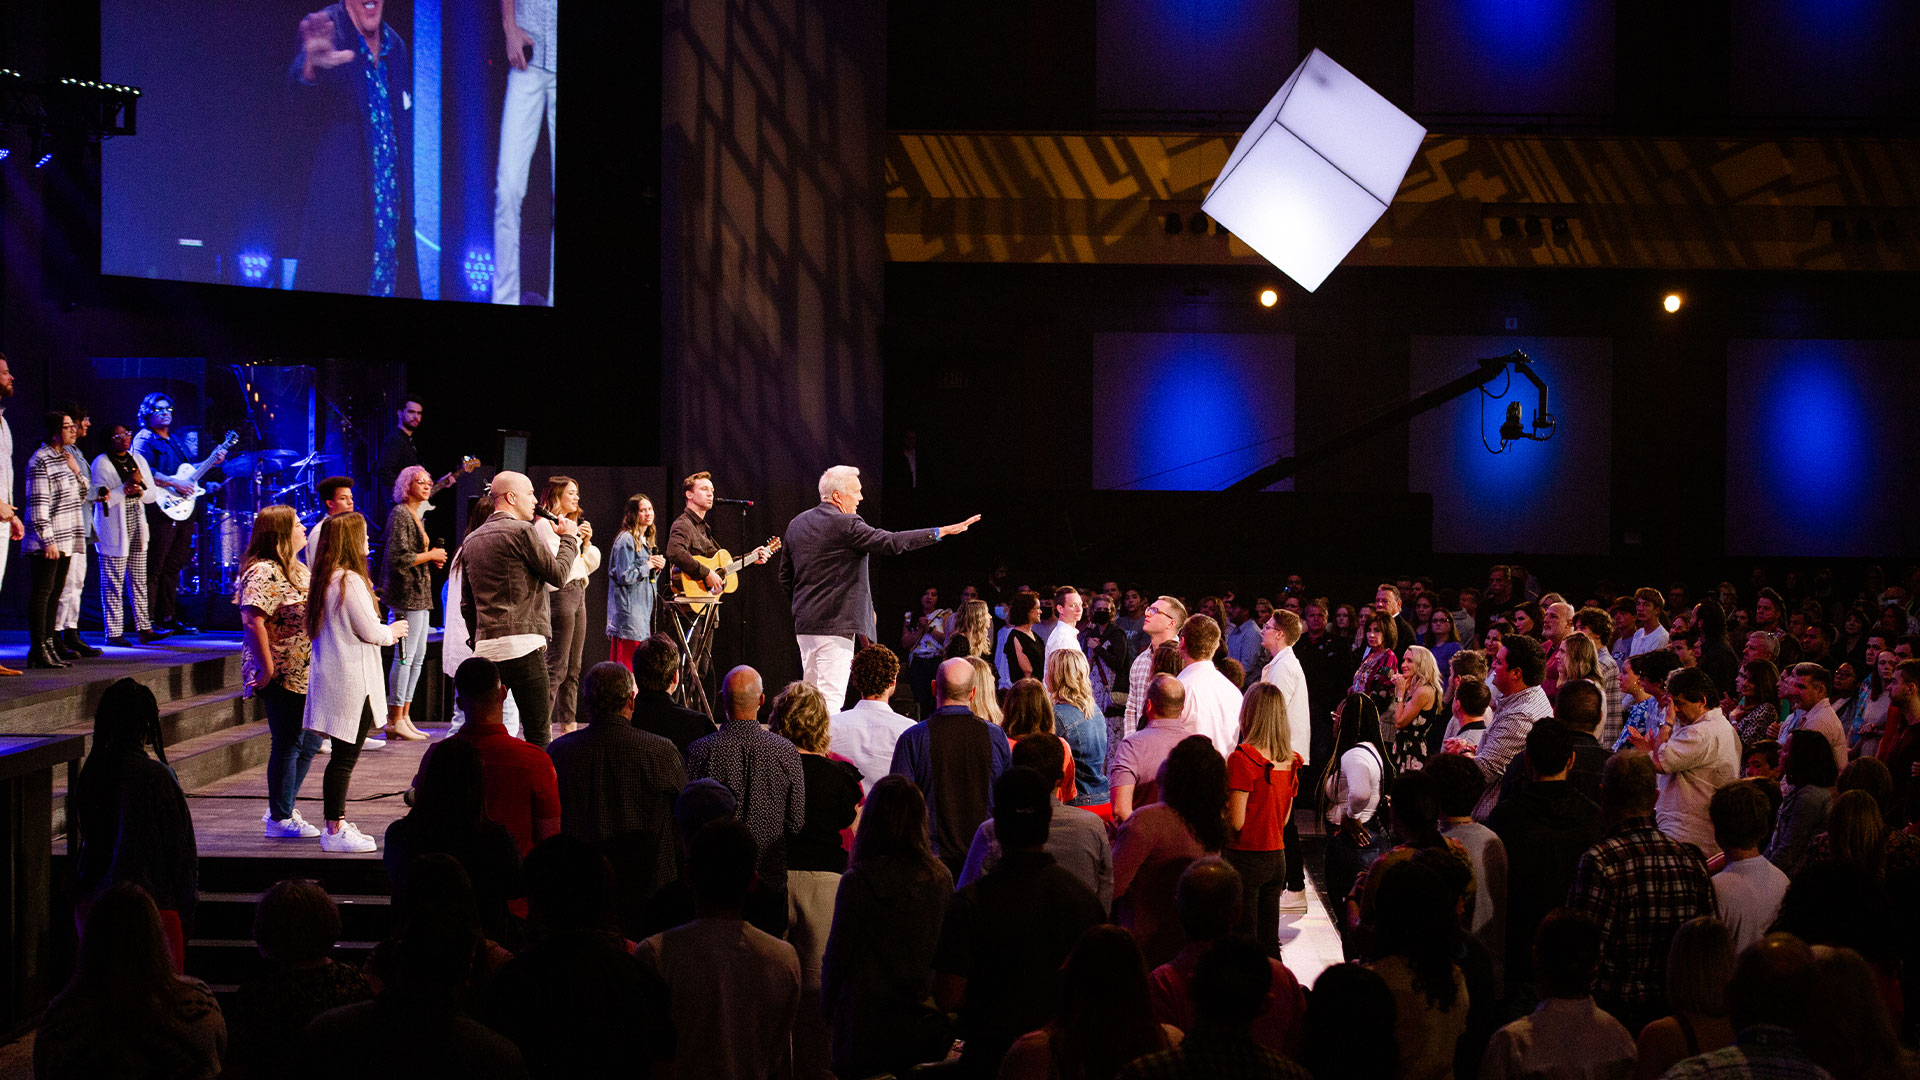 Pastor Ed Young praying for the congregation